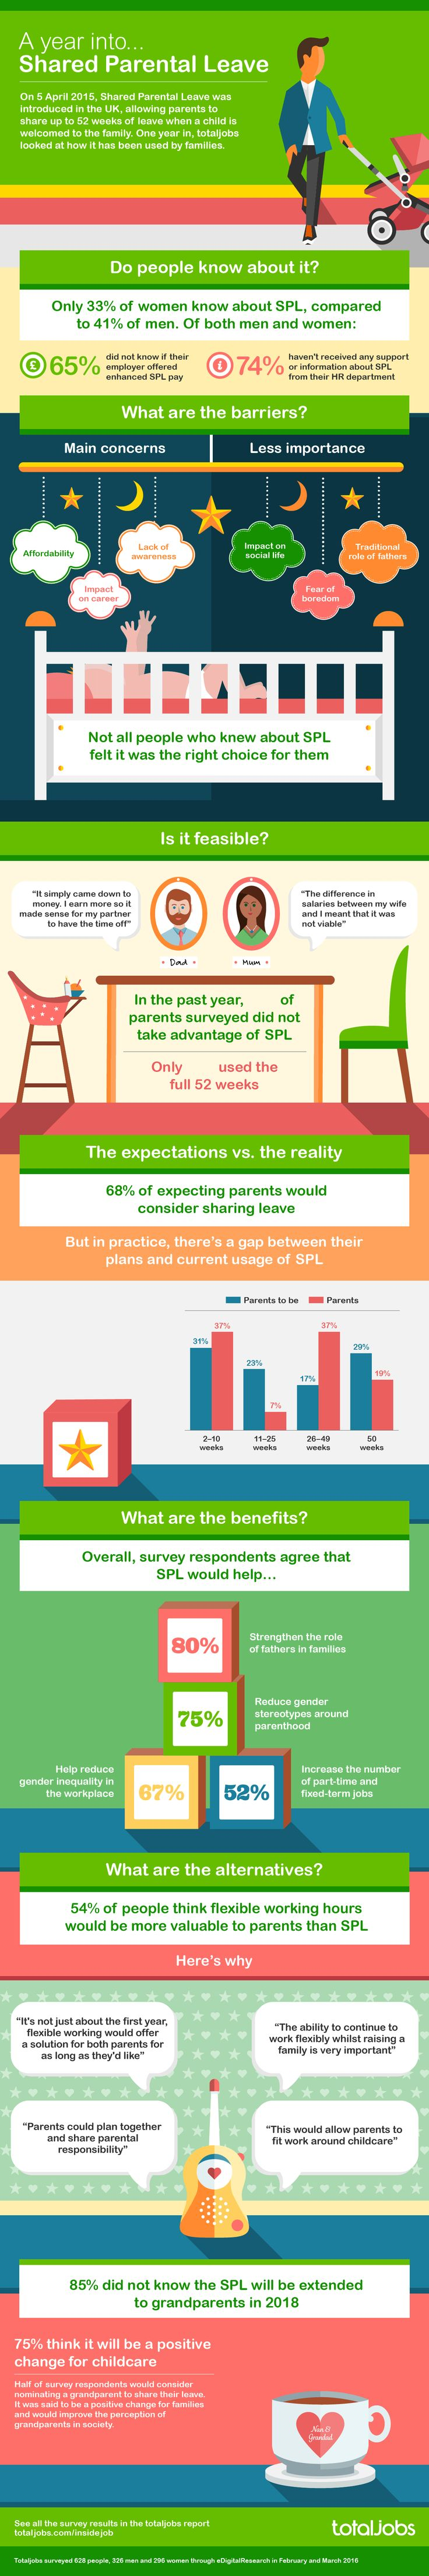 PARENTING :  A look at shared parental leave a year after it passed.